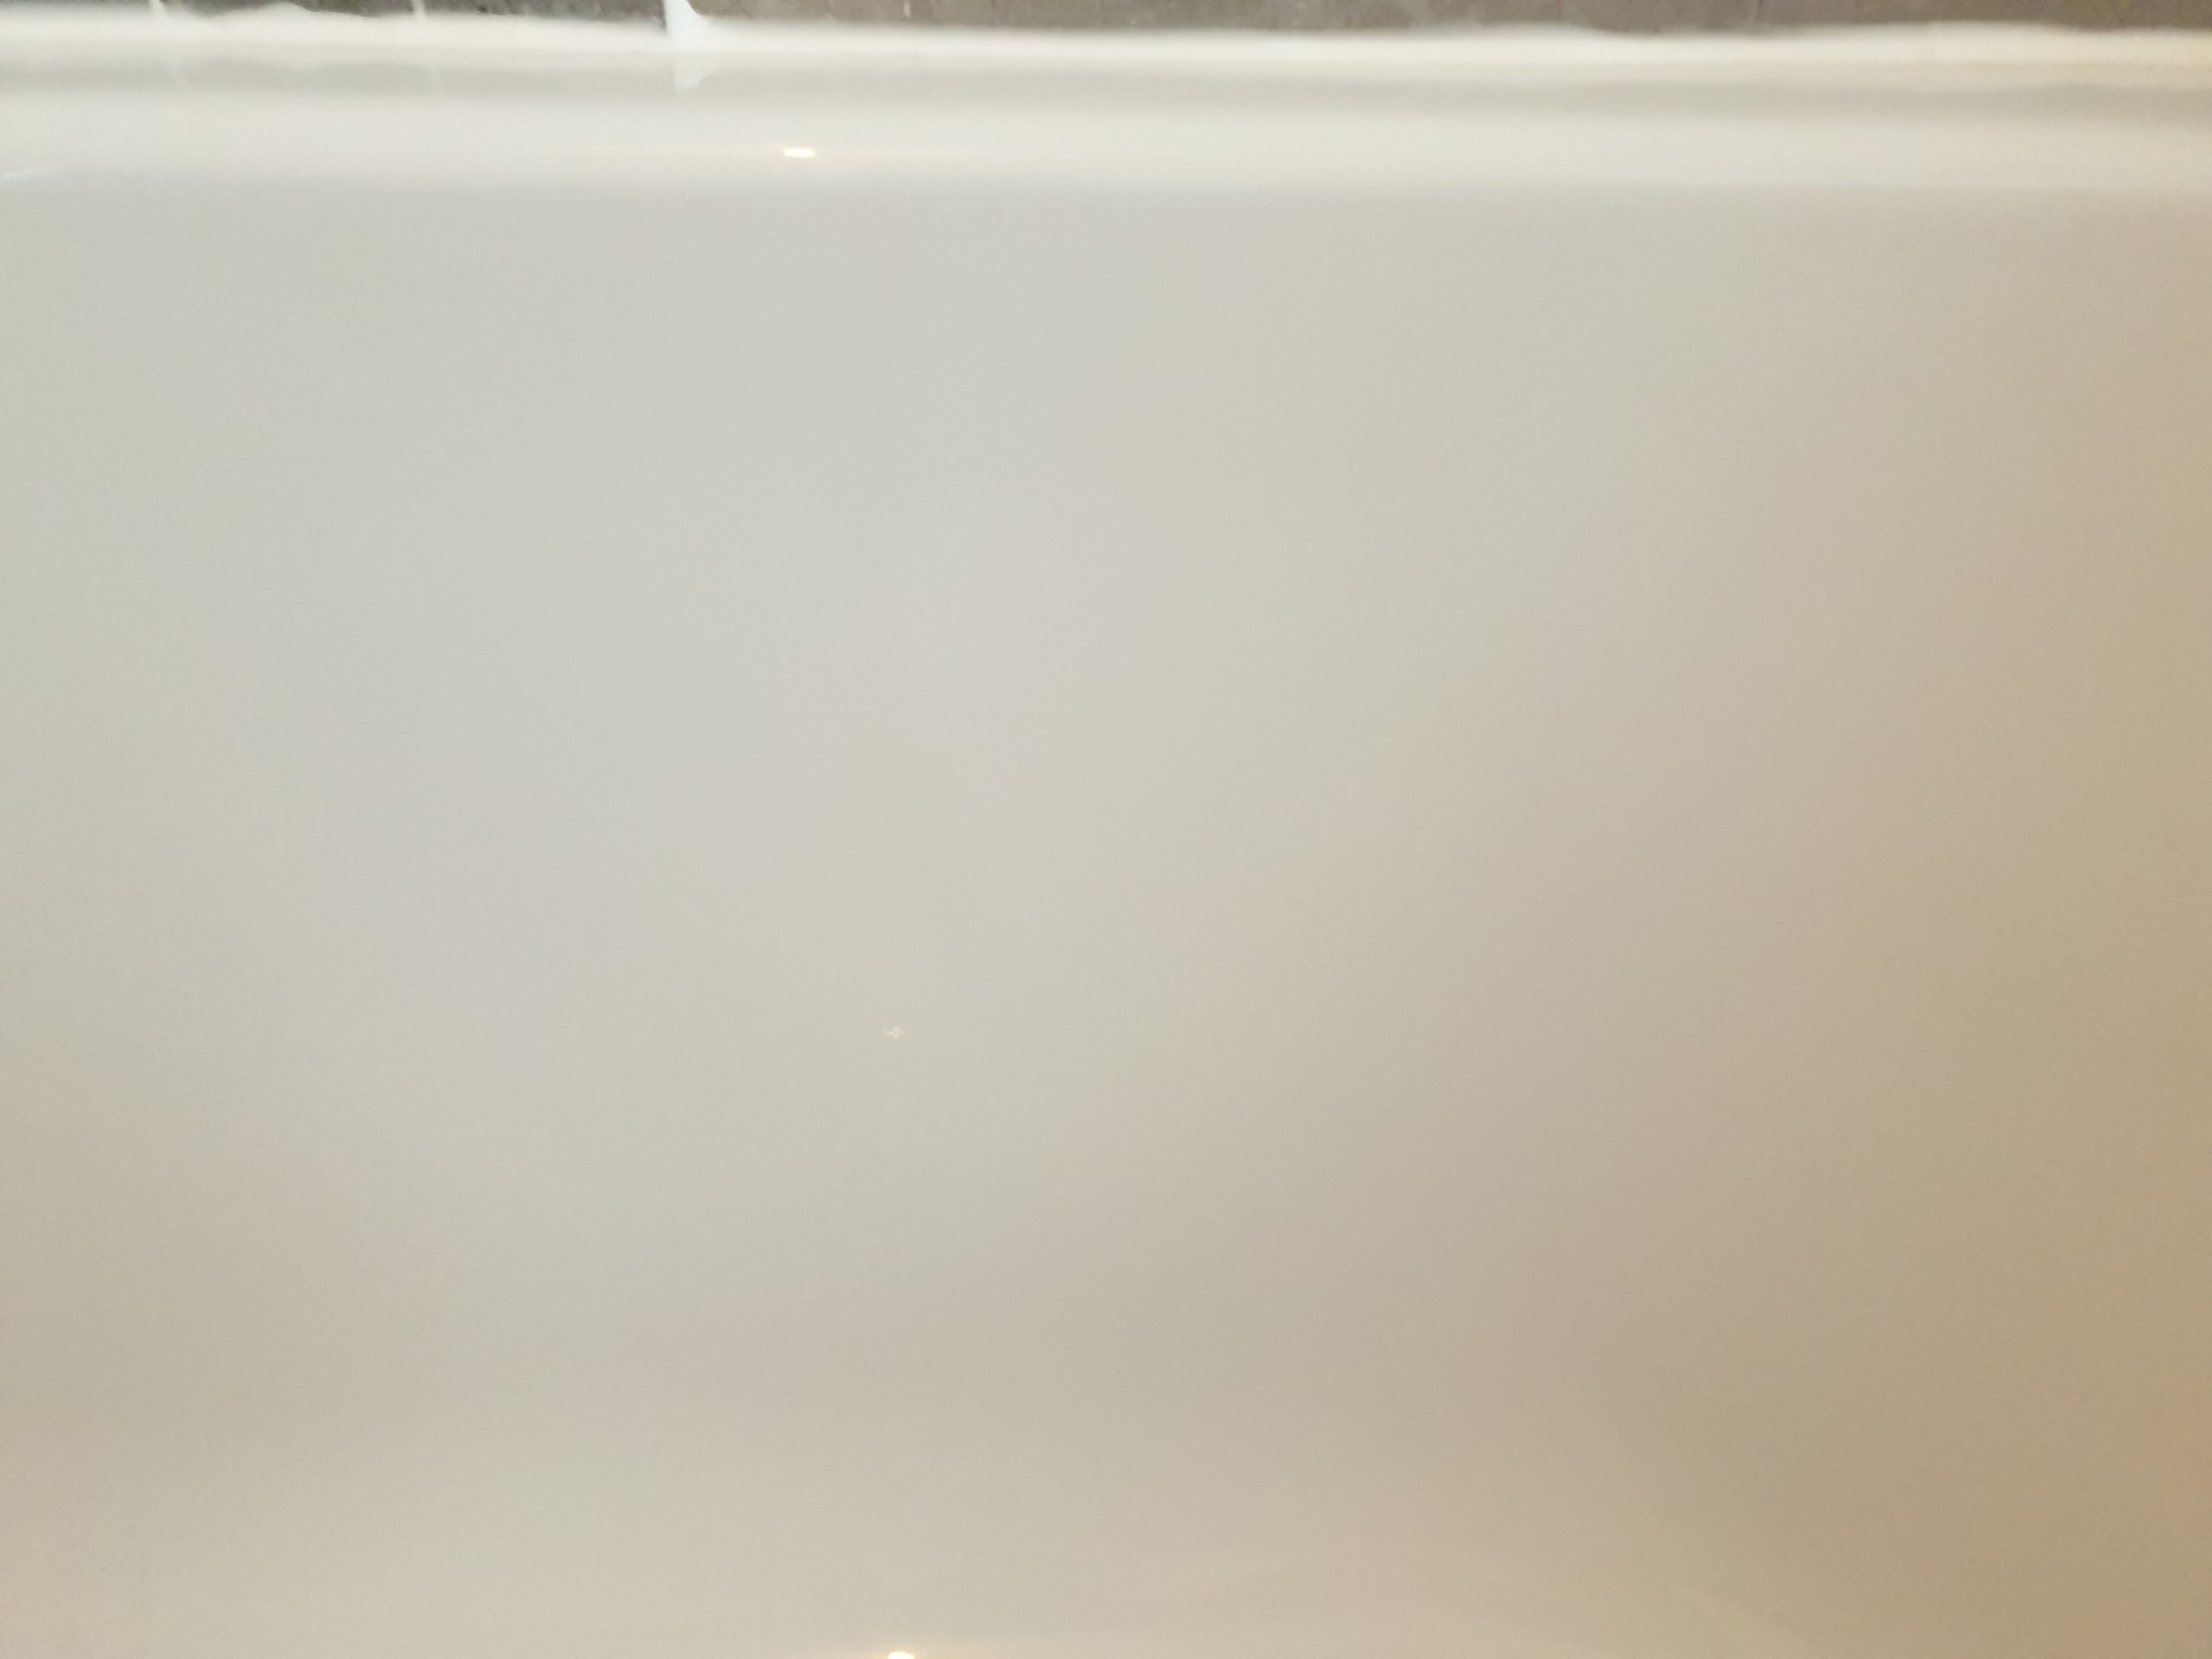 CRACKED PLASTIC BATH REPAIR AFTER